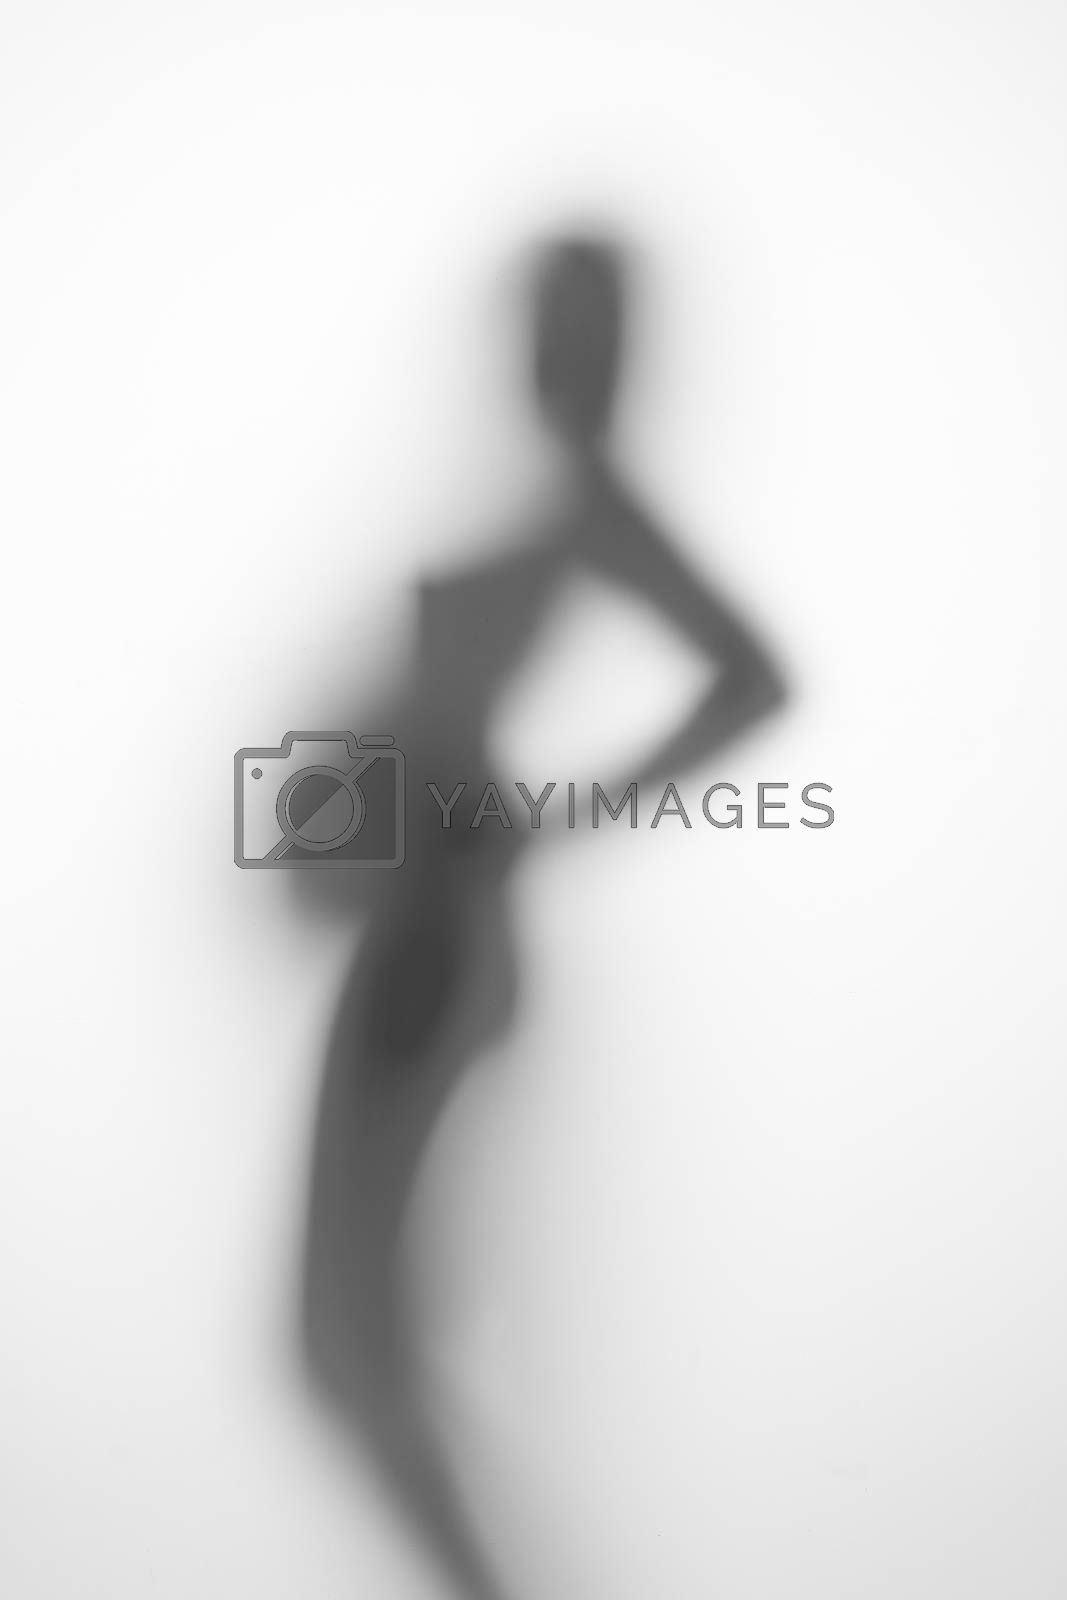 silhouette of a pregnant woman on a light background by A_Karim